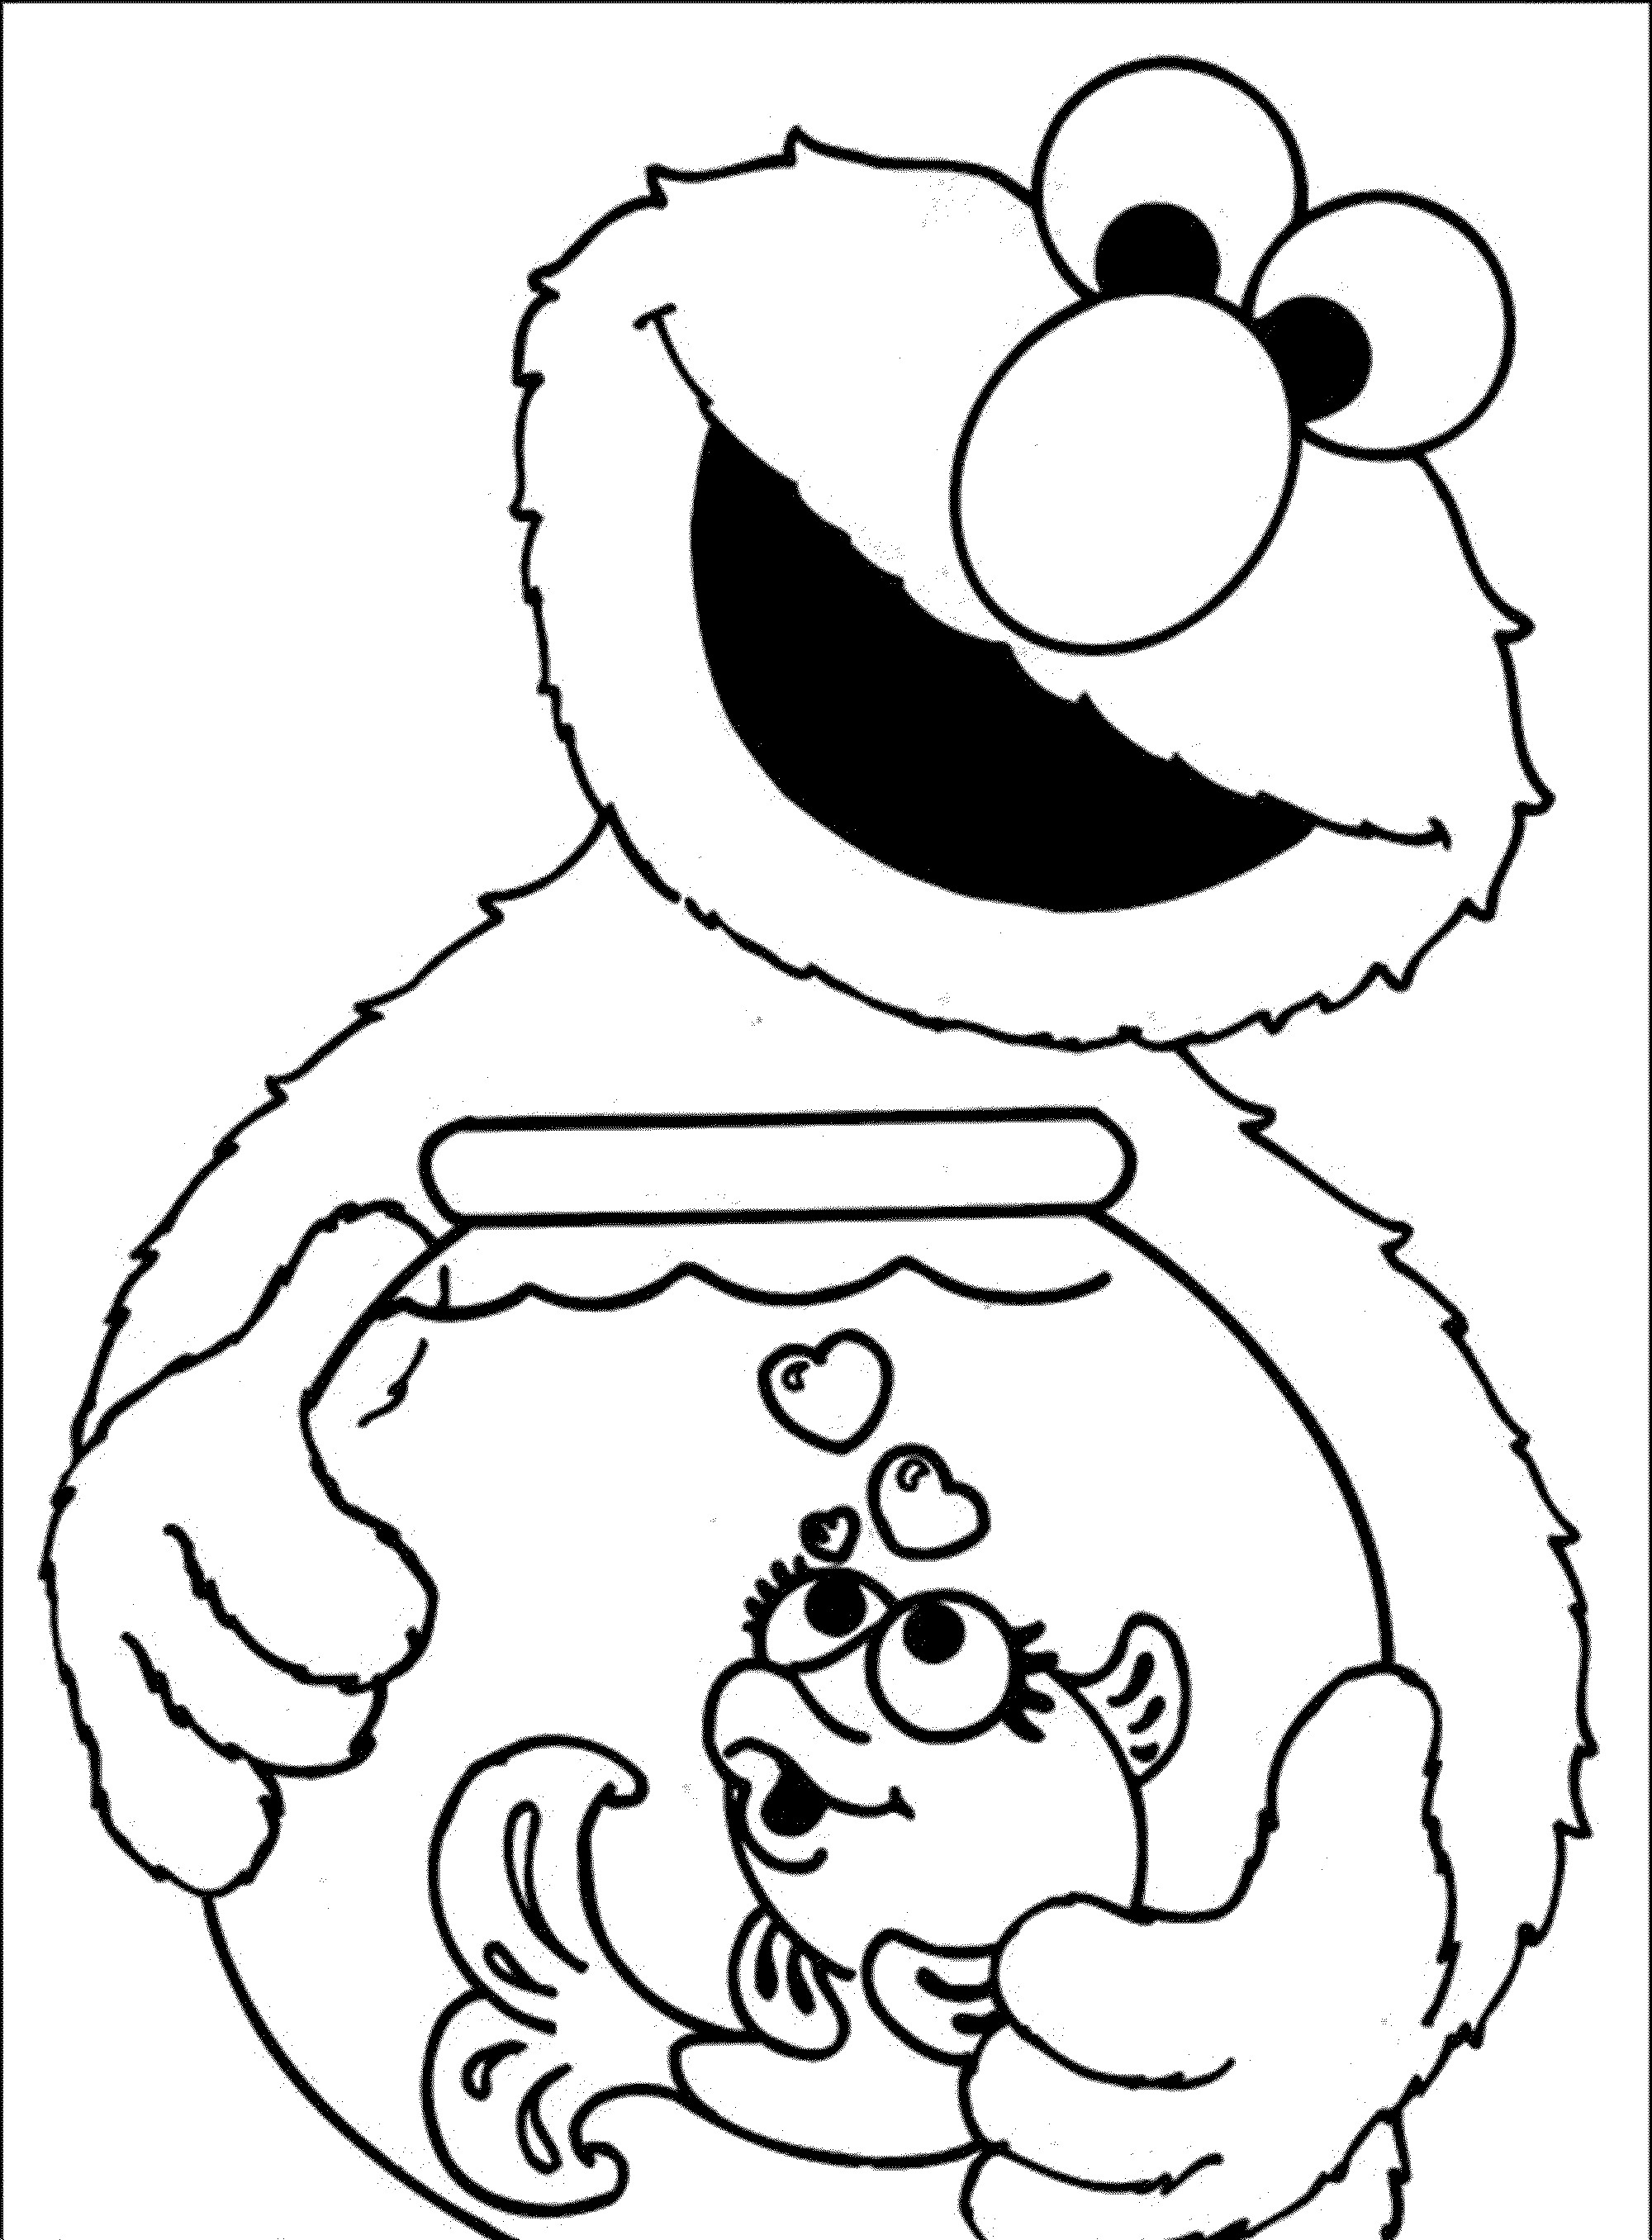 Free Elmo Printable Coloring Pages Download 2o - Free For kids